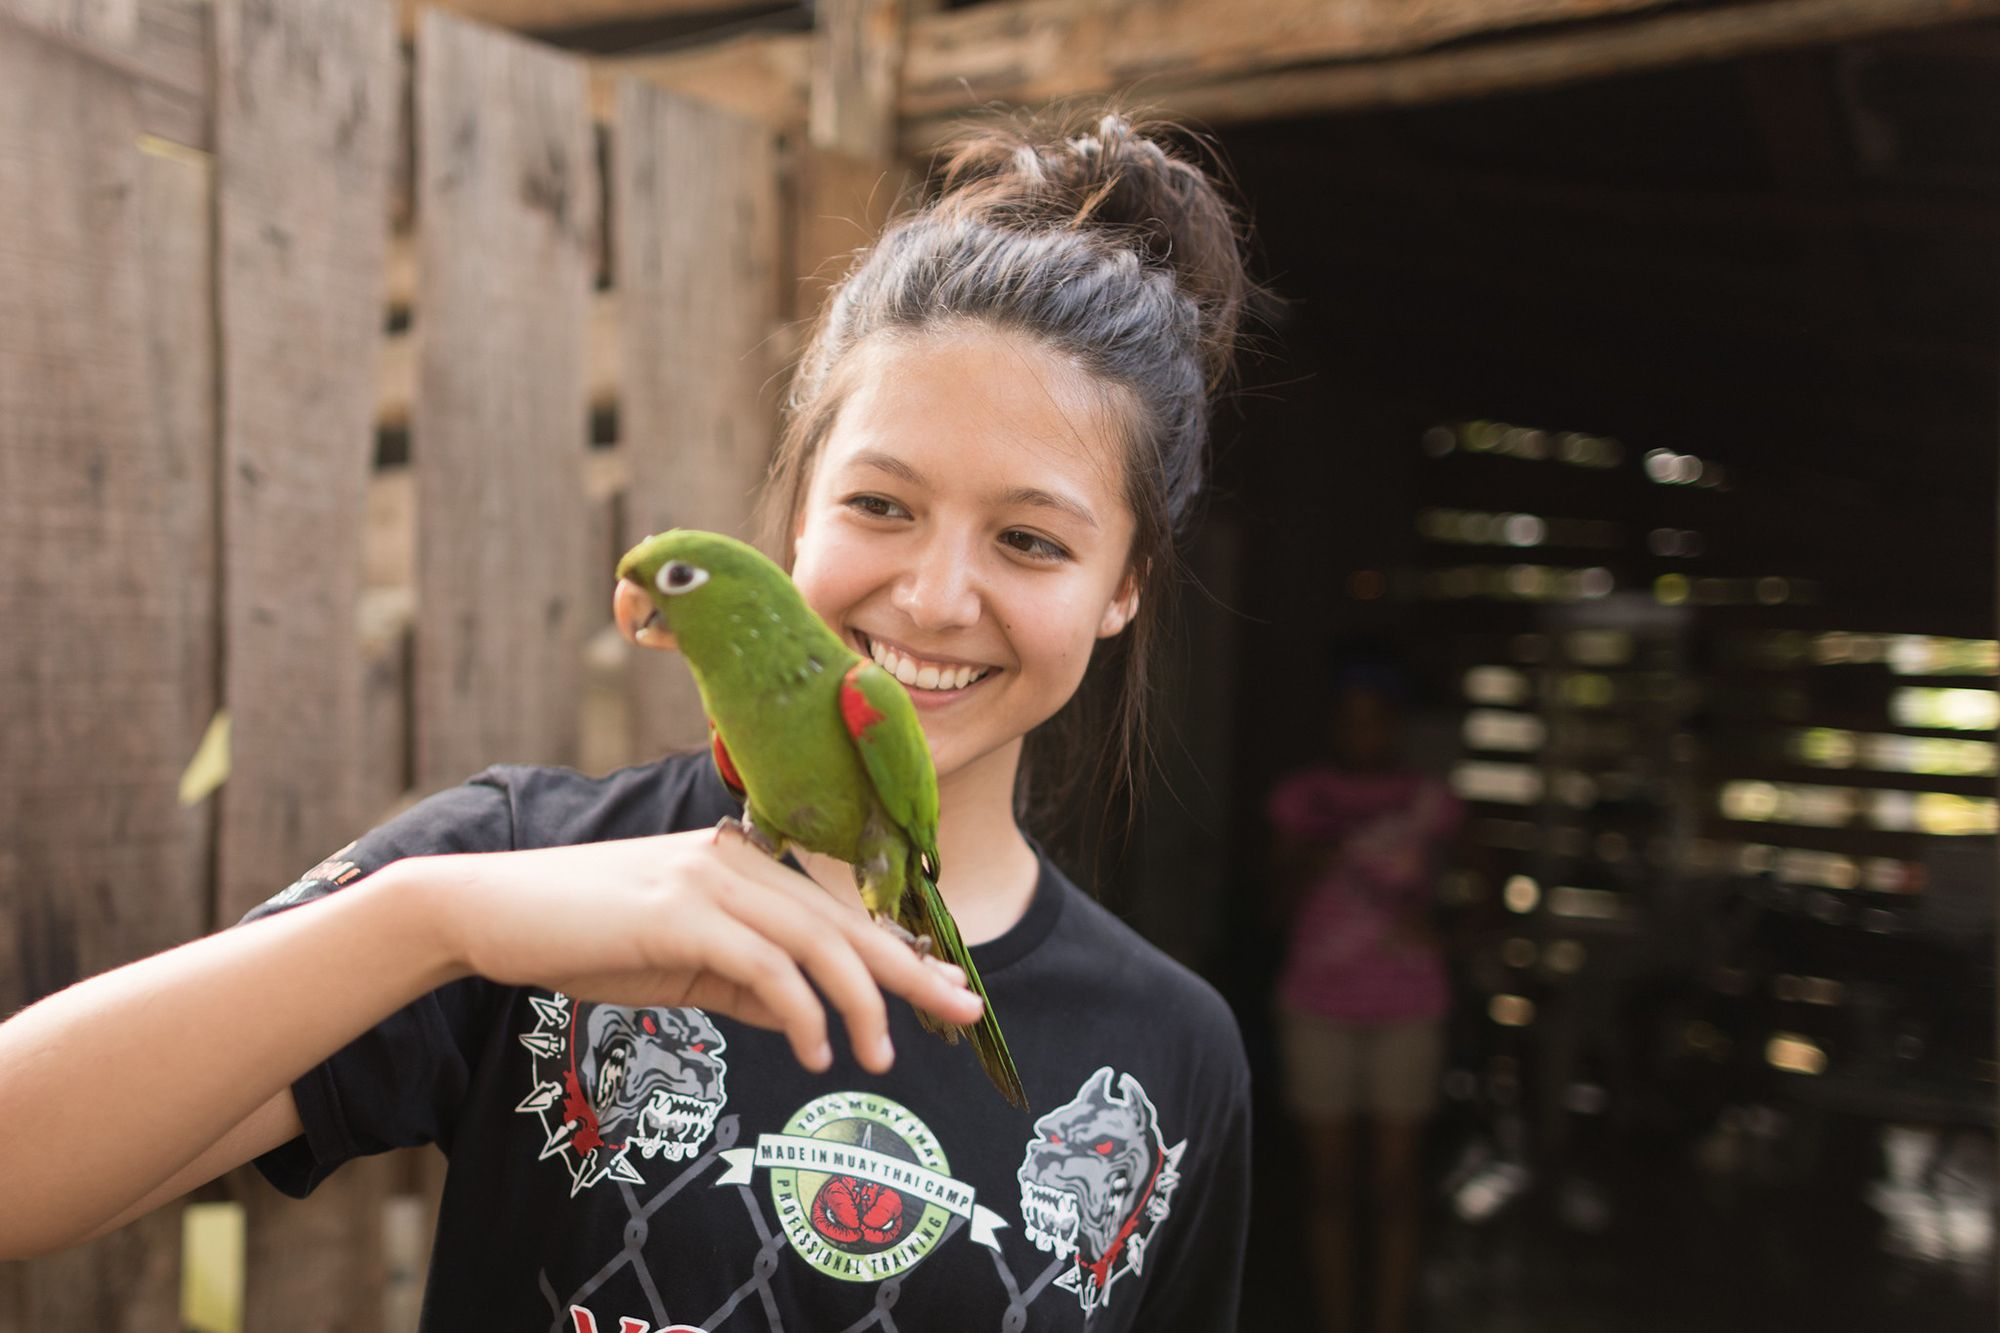 A student holding a green parakeet during a Dominican Republic field study.